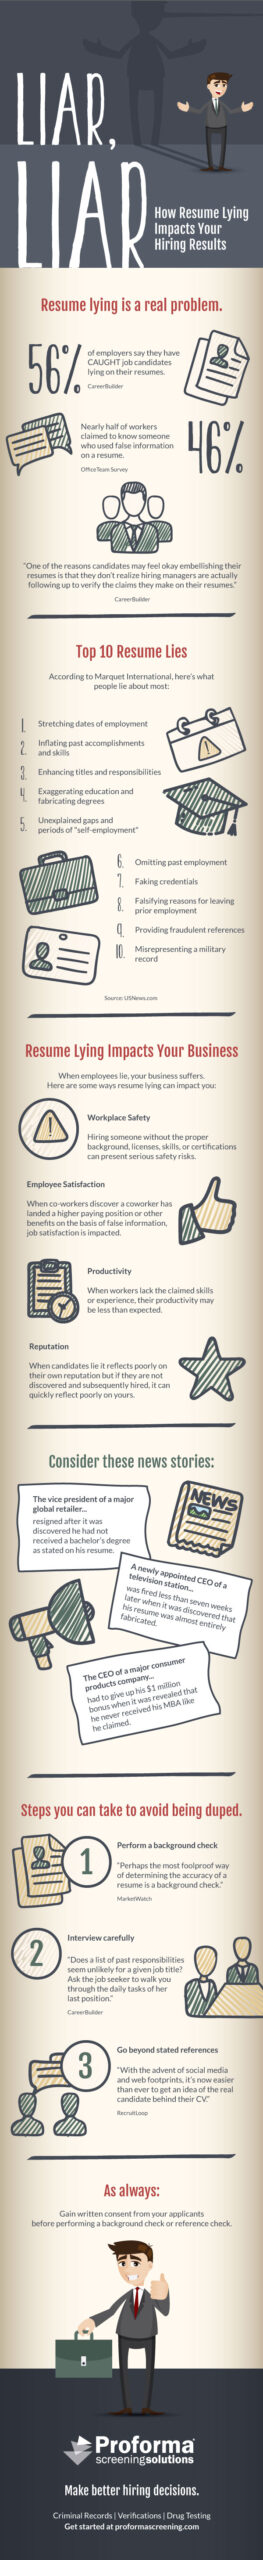 resume lying impacts your hiring results infographic dismissed for on pss final headshot Resume Dismissed For Lying On Resume